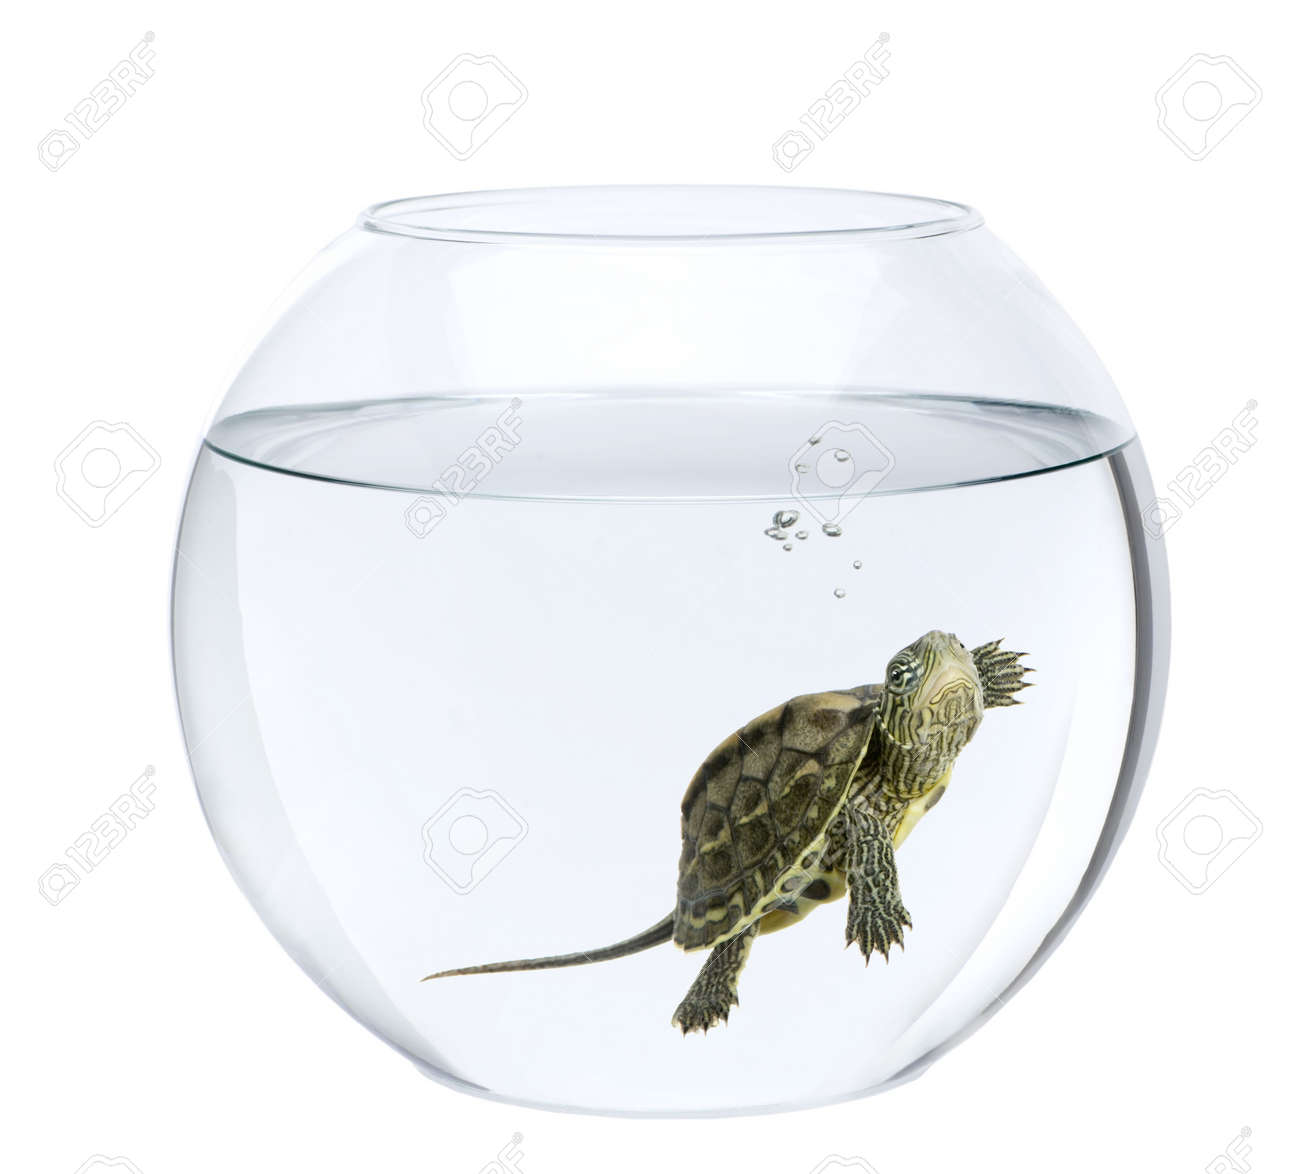 Freshwater fish bowl - Small Turtle Swimming In Fish Bowl In Front Of White Background Stock Photo 6378754